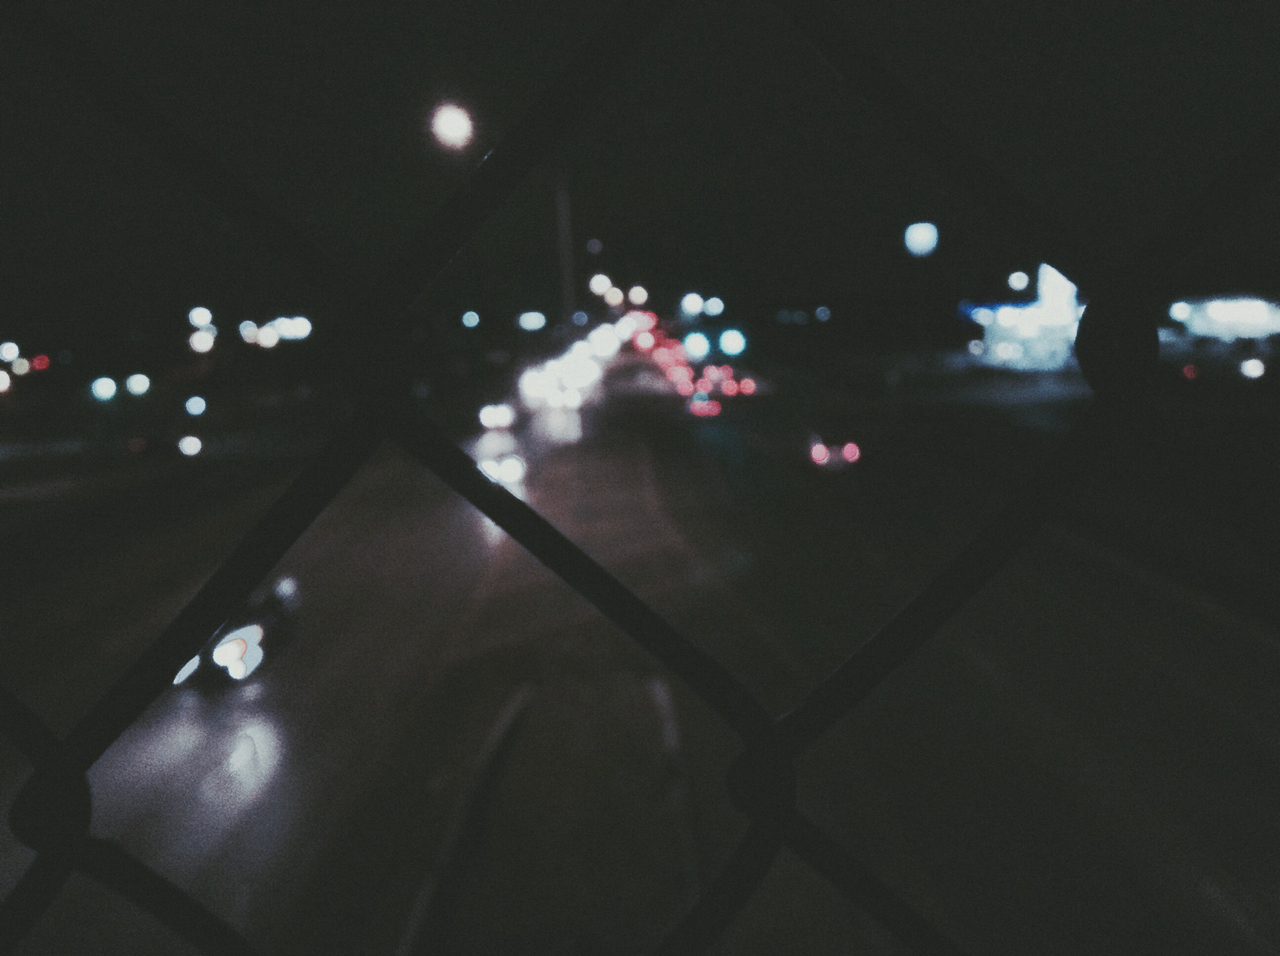 grunge, glow, pale, neon, bokeh, indie, tumblr, white, hippie, cars, cool, lights, photography, urban, rad, black, blue, colors, city lights, midnight